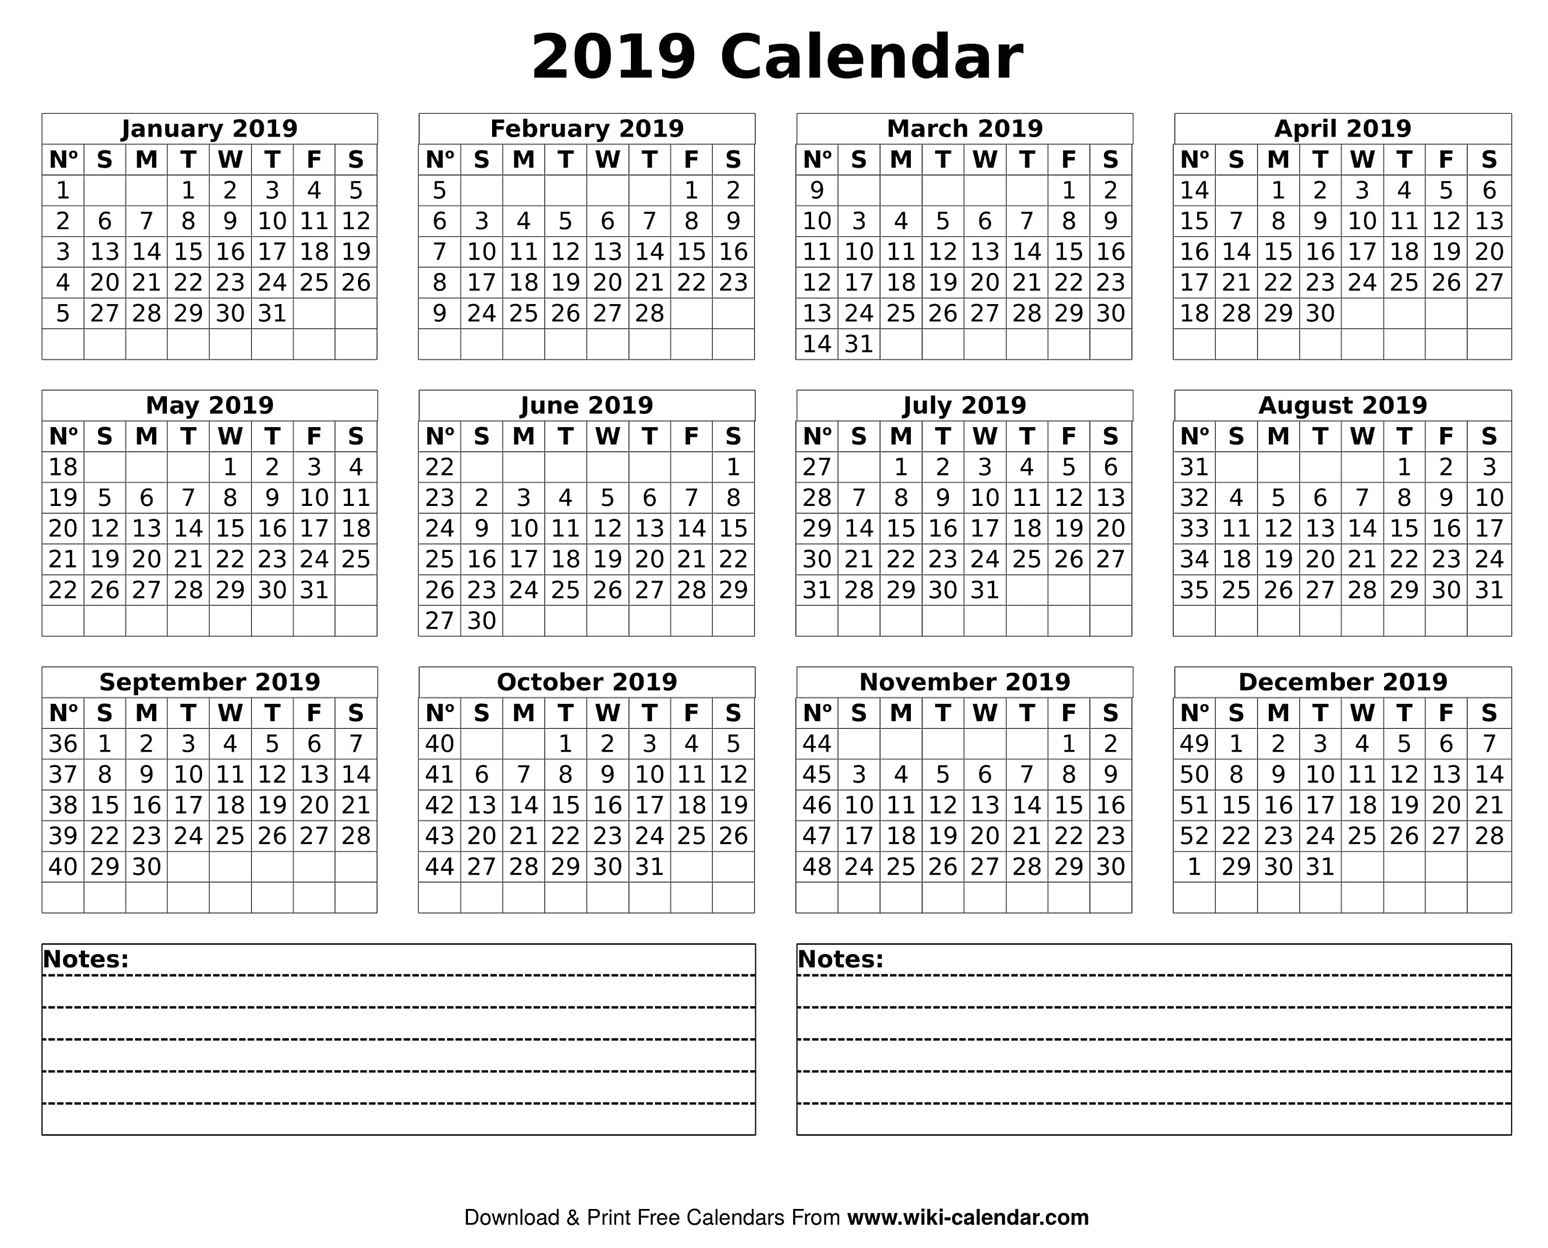 Yearly 2019 Calendar Template